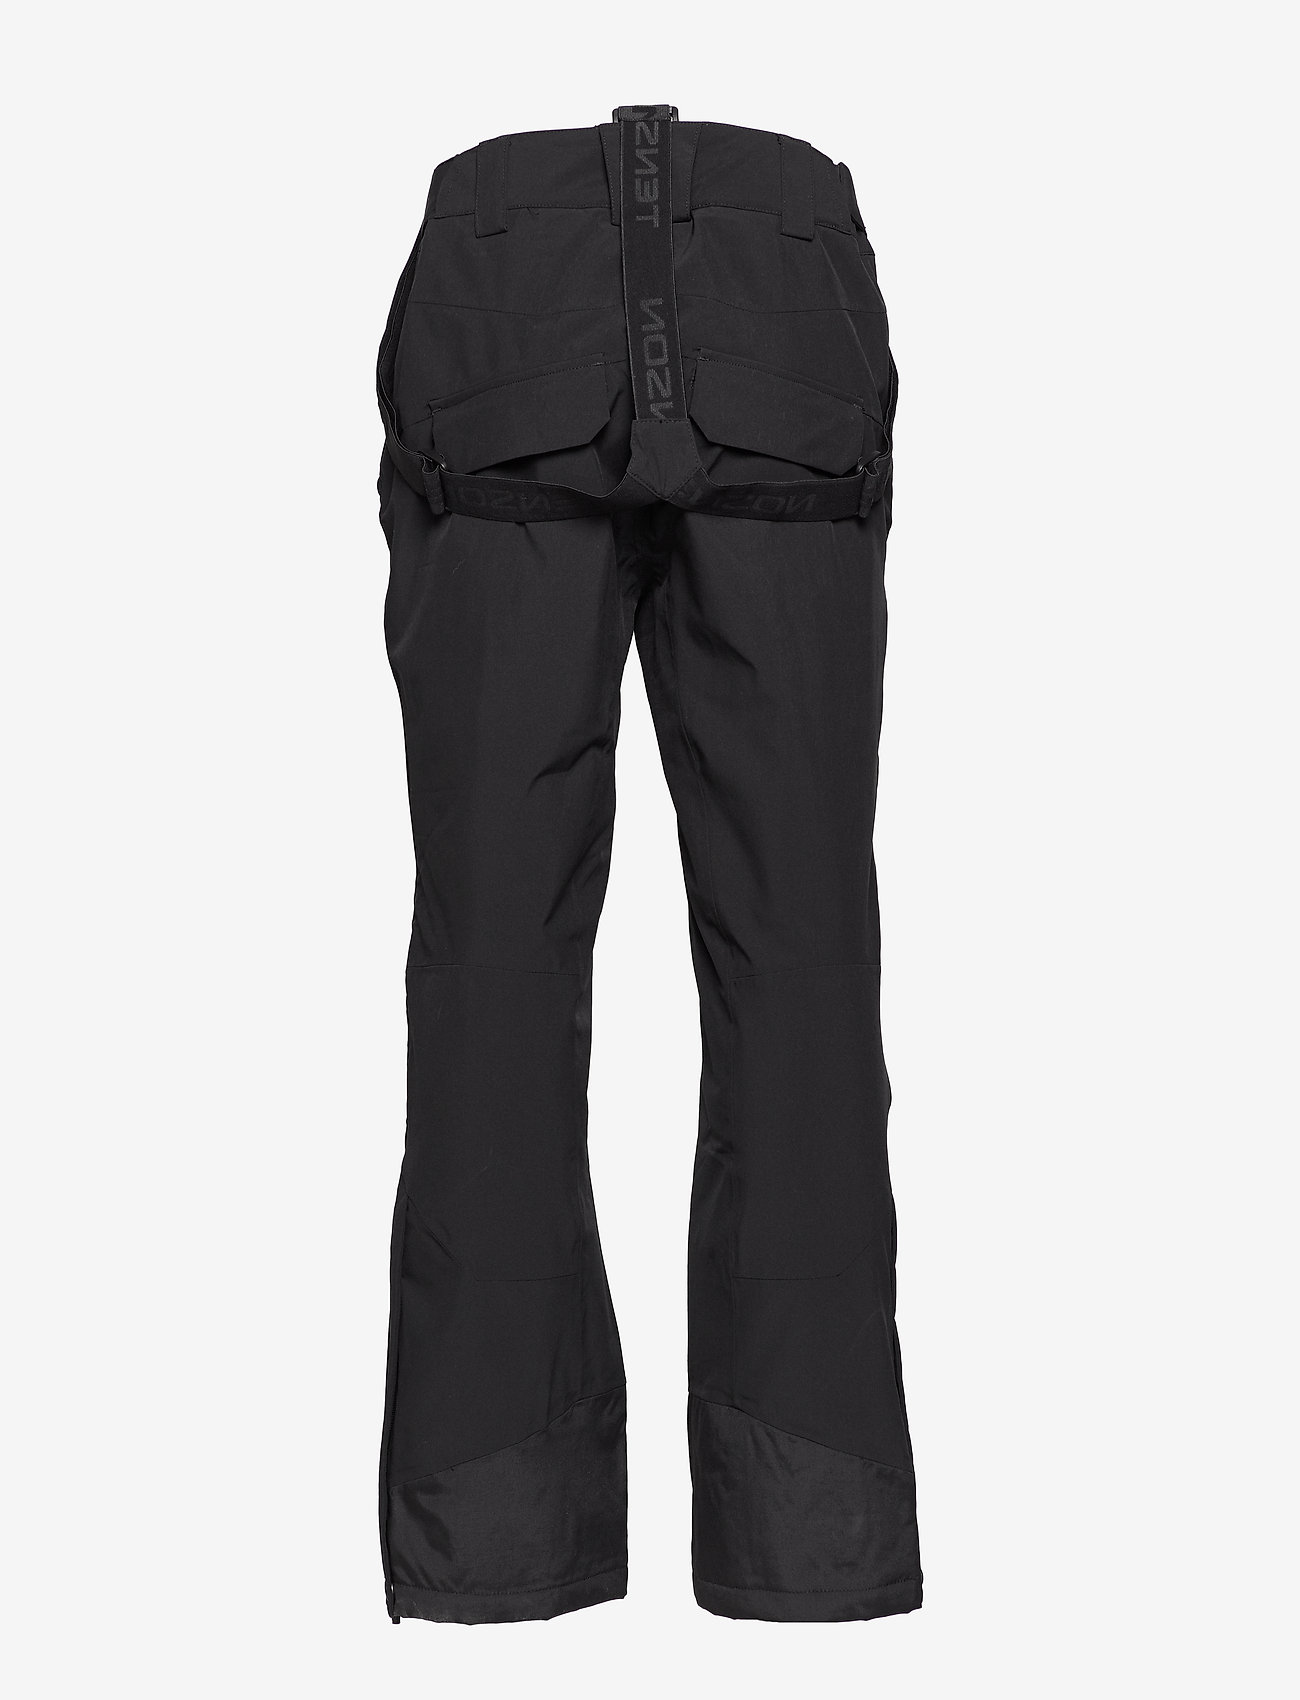 Tenson - Brave - shell pants - black - 1